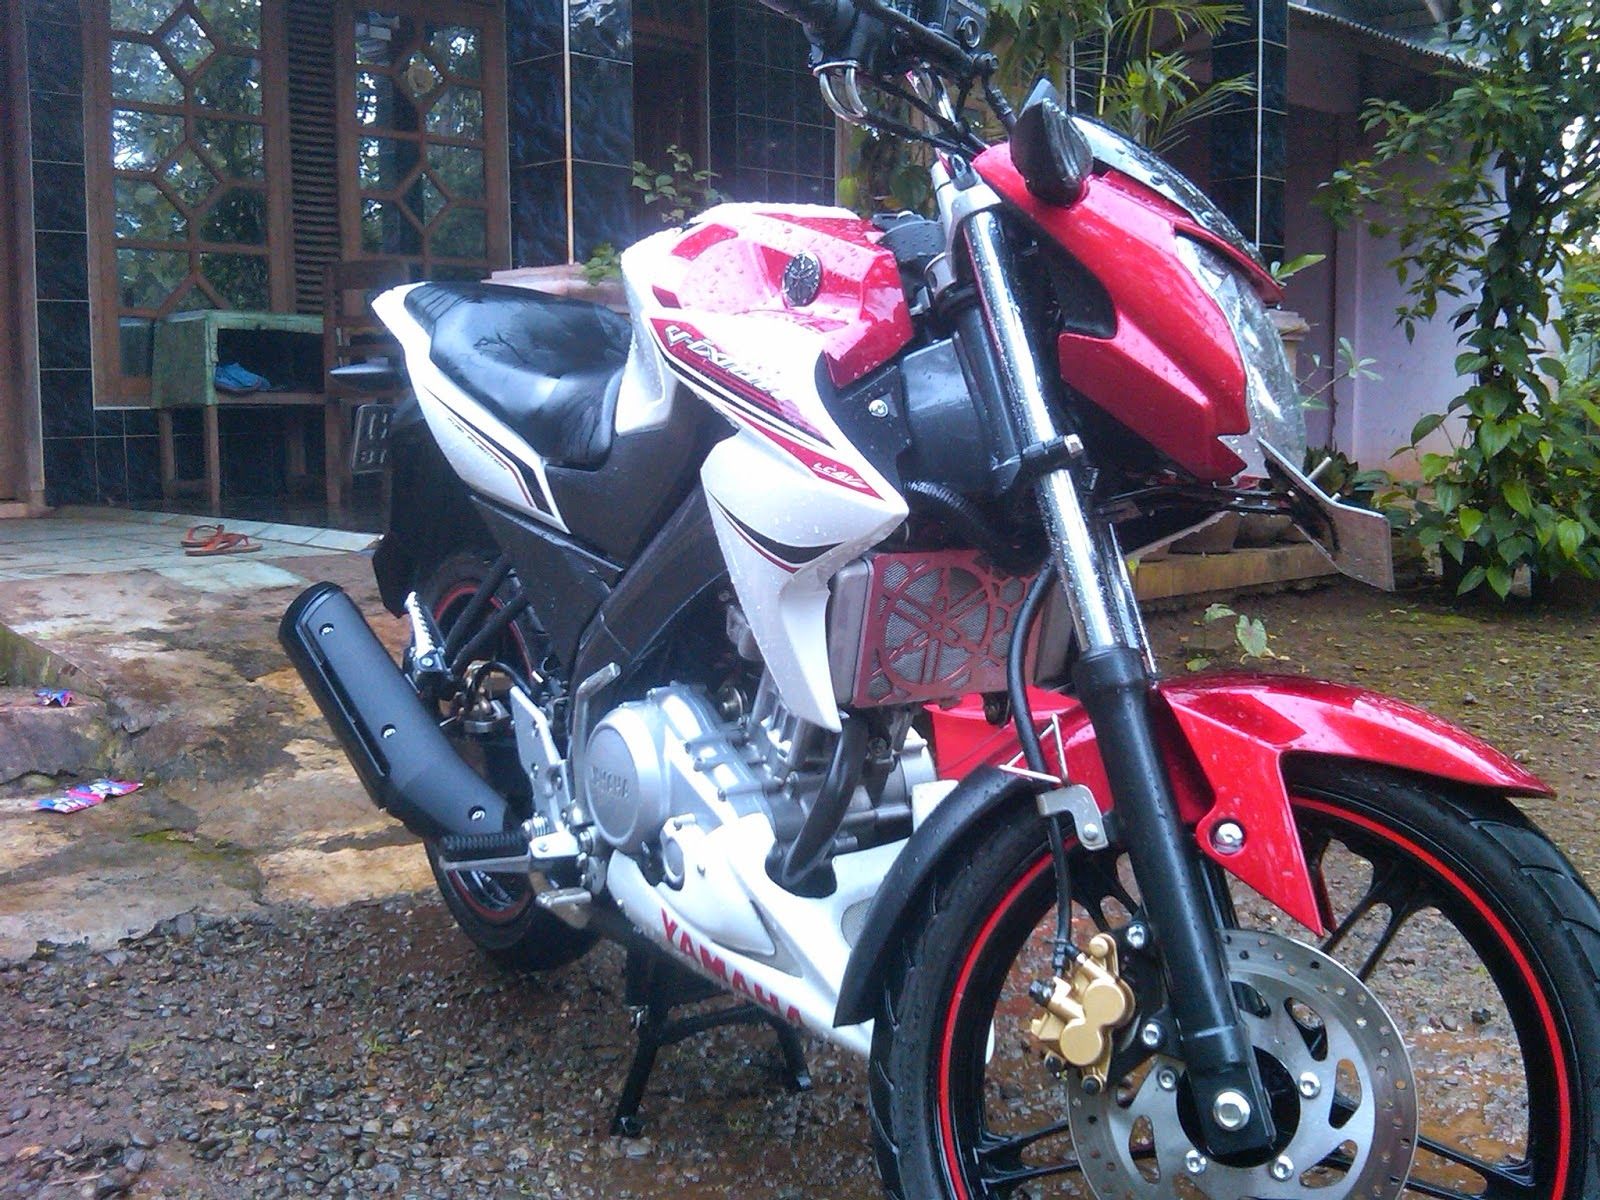 Modifikasi Striping Cb150r Putih Merah